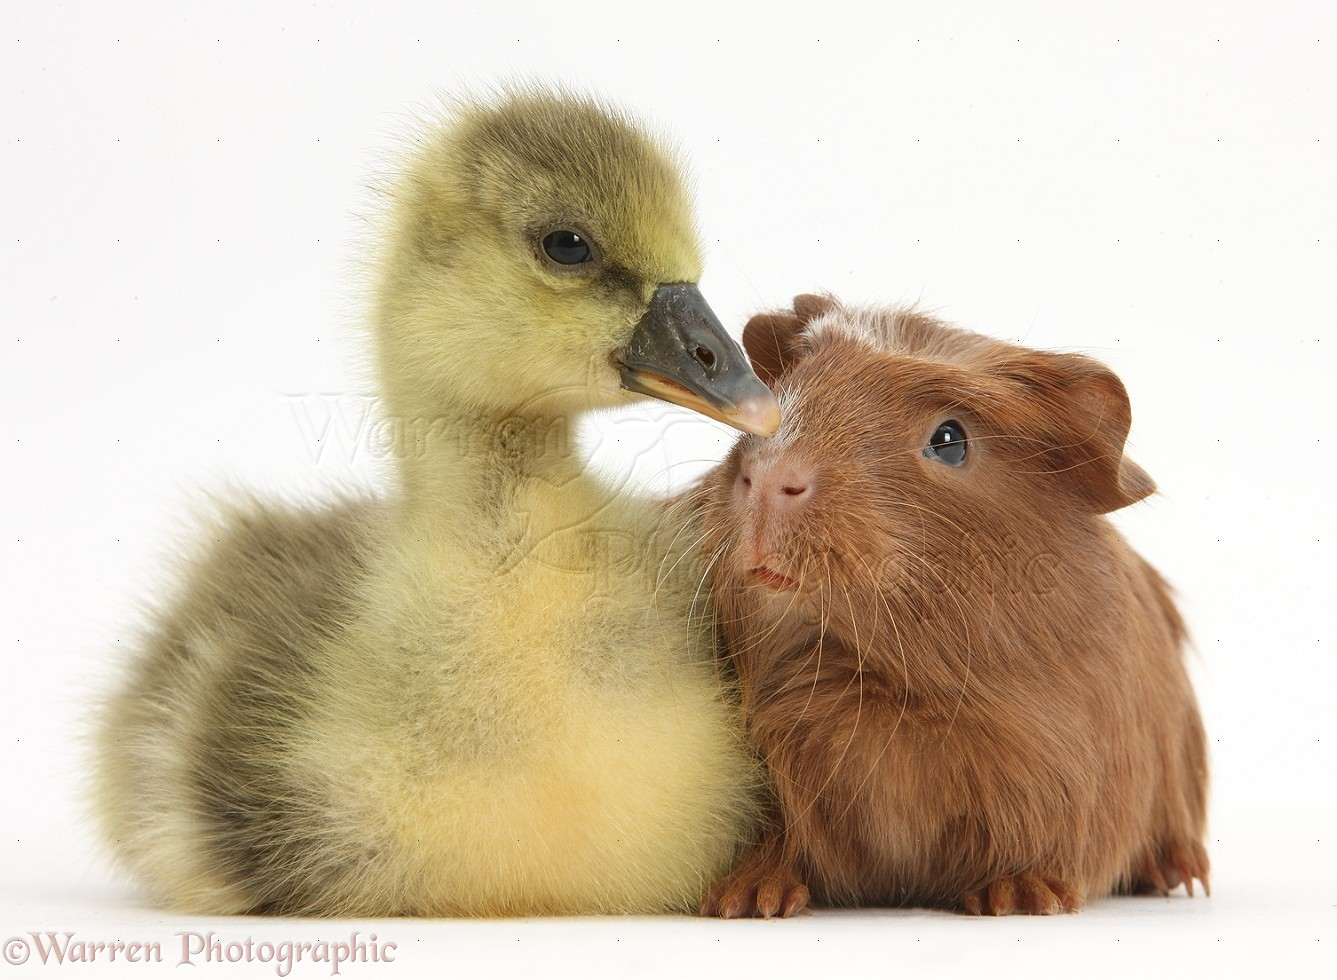 Cute Gosling and baby Guinea pig photo WP40089